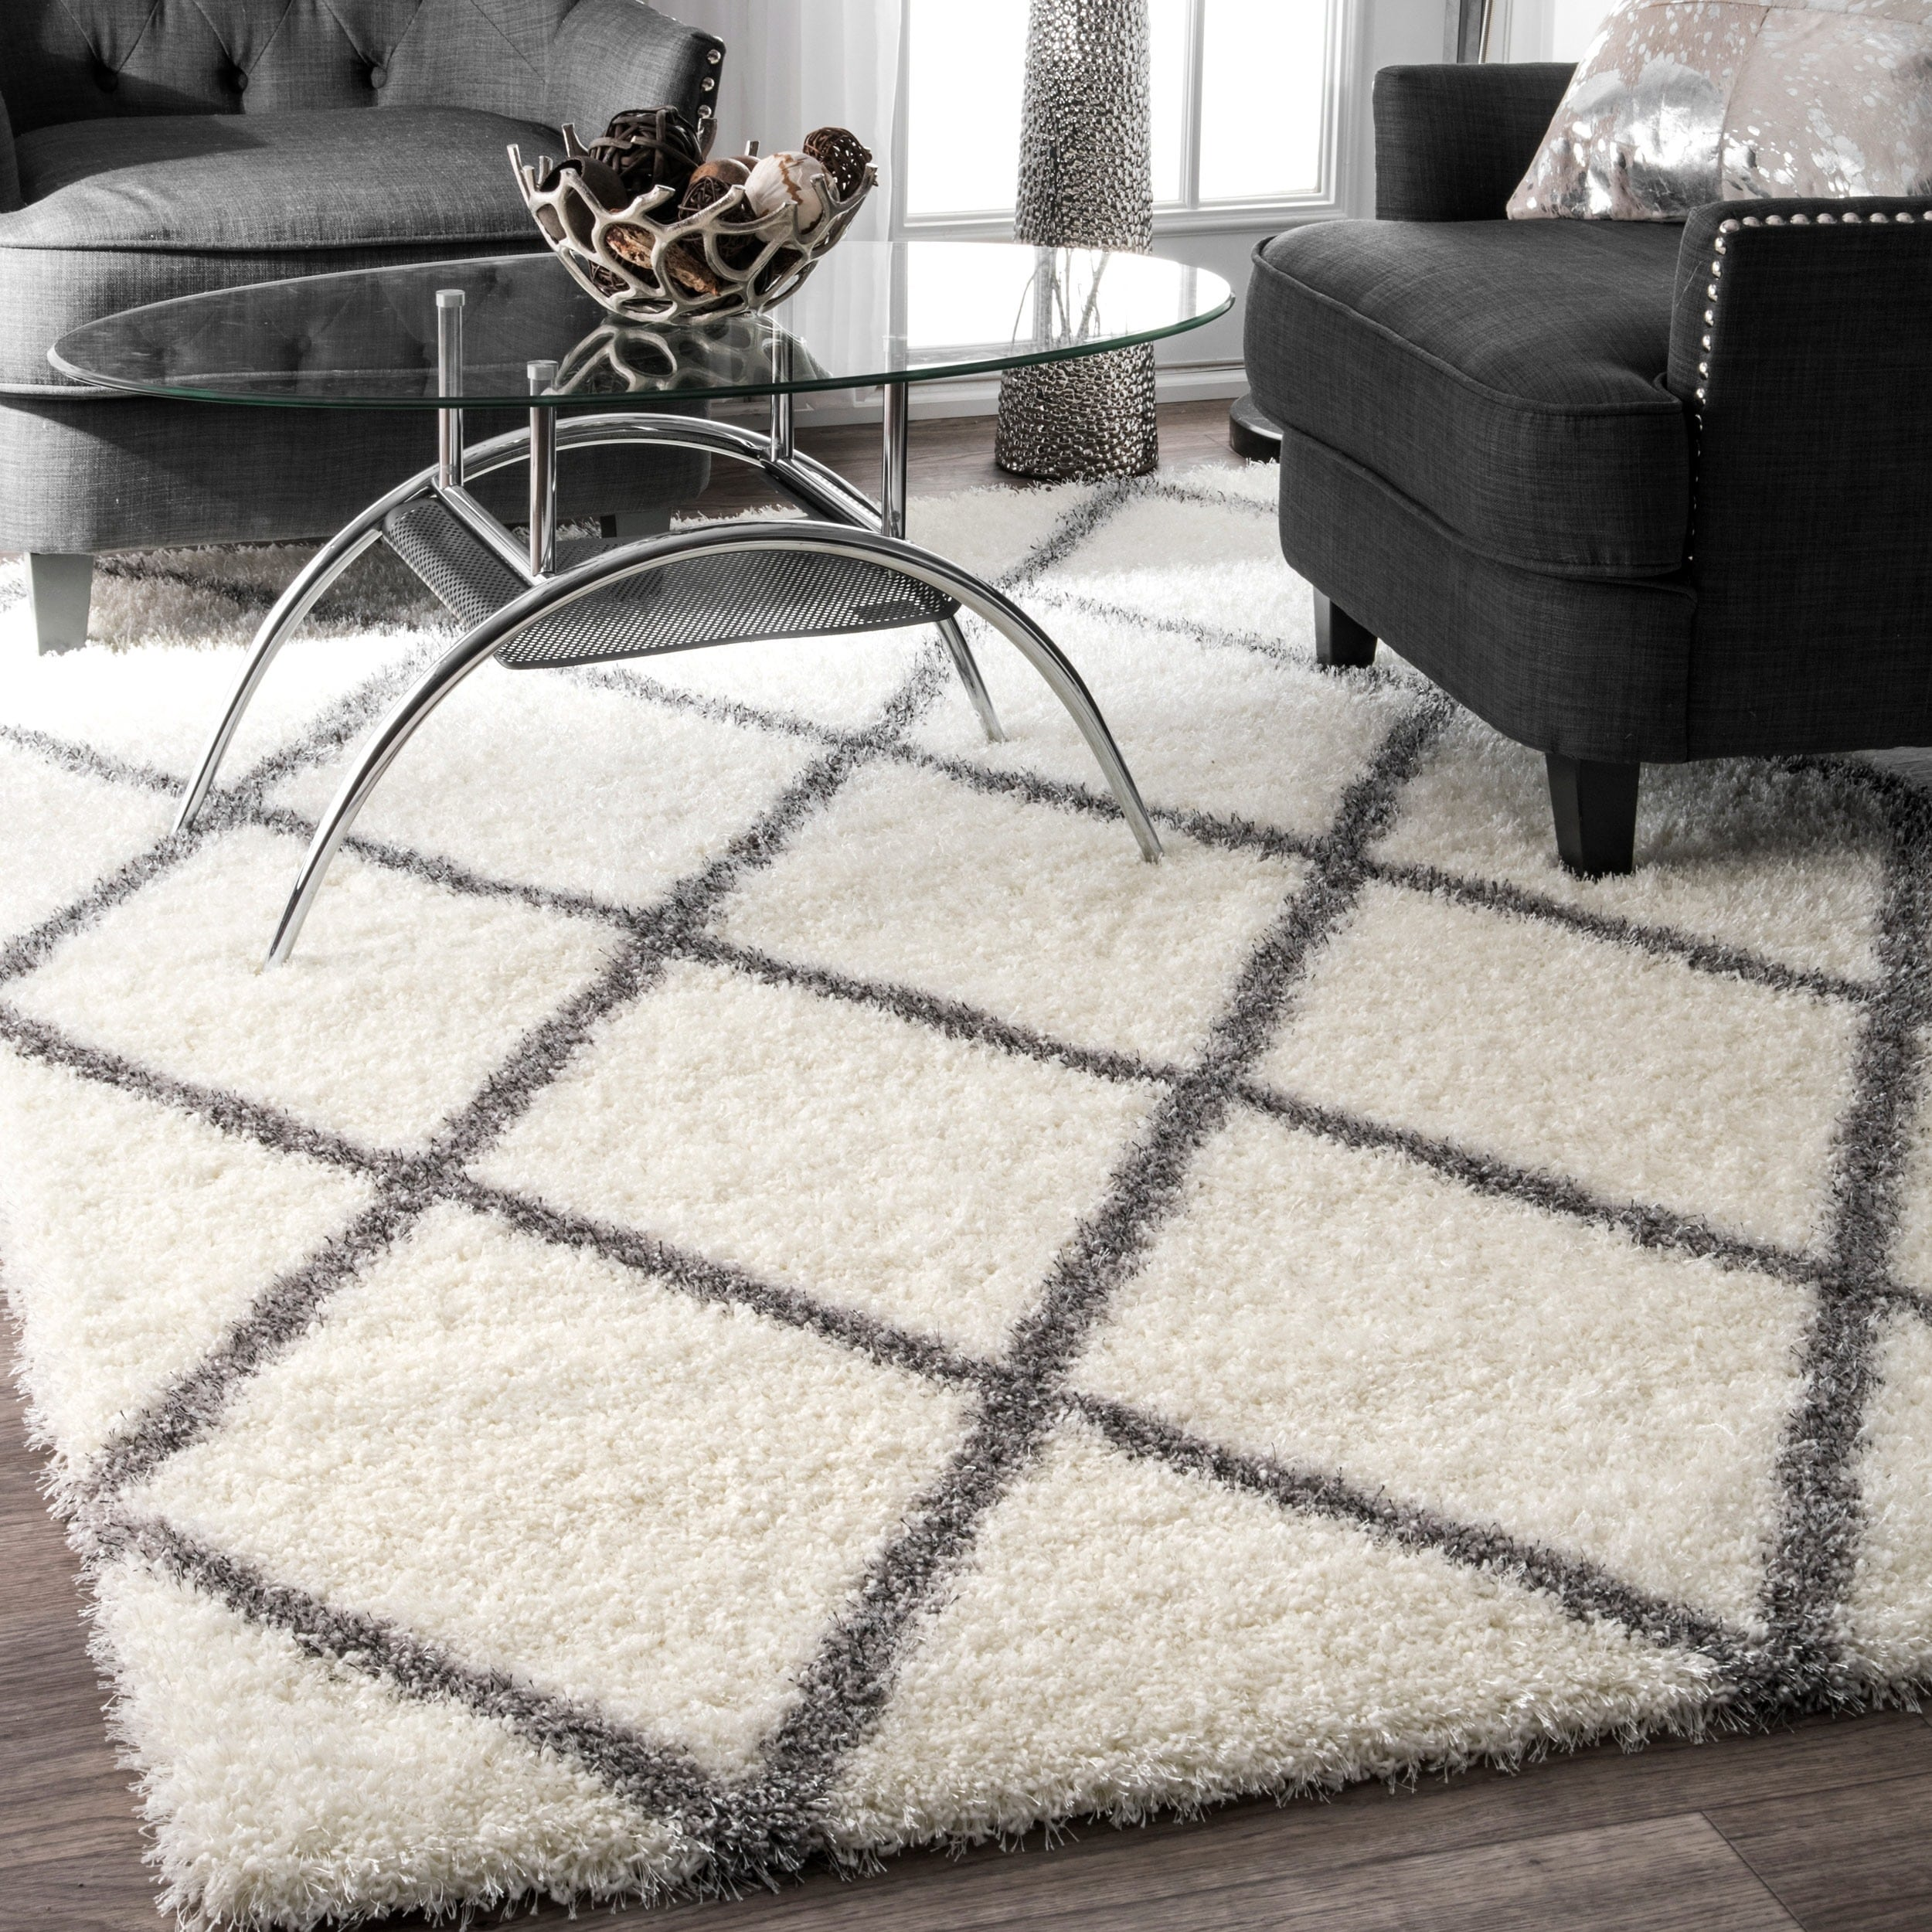 Nuloom Soft And Plush Moroccan Trellis Rug 4 X27